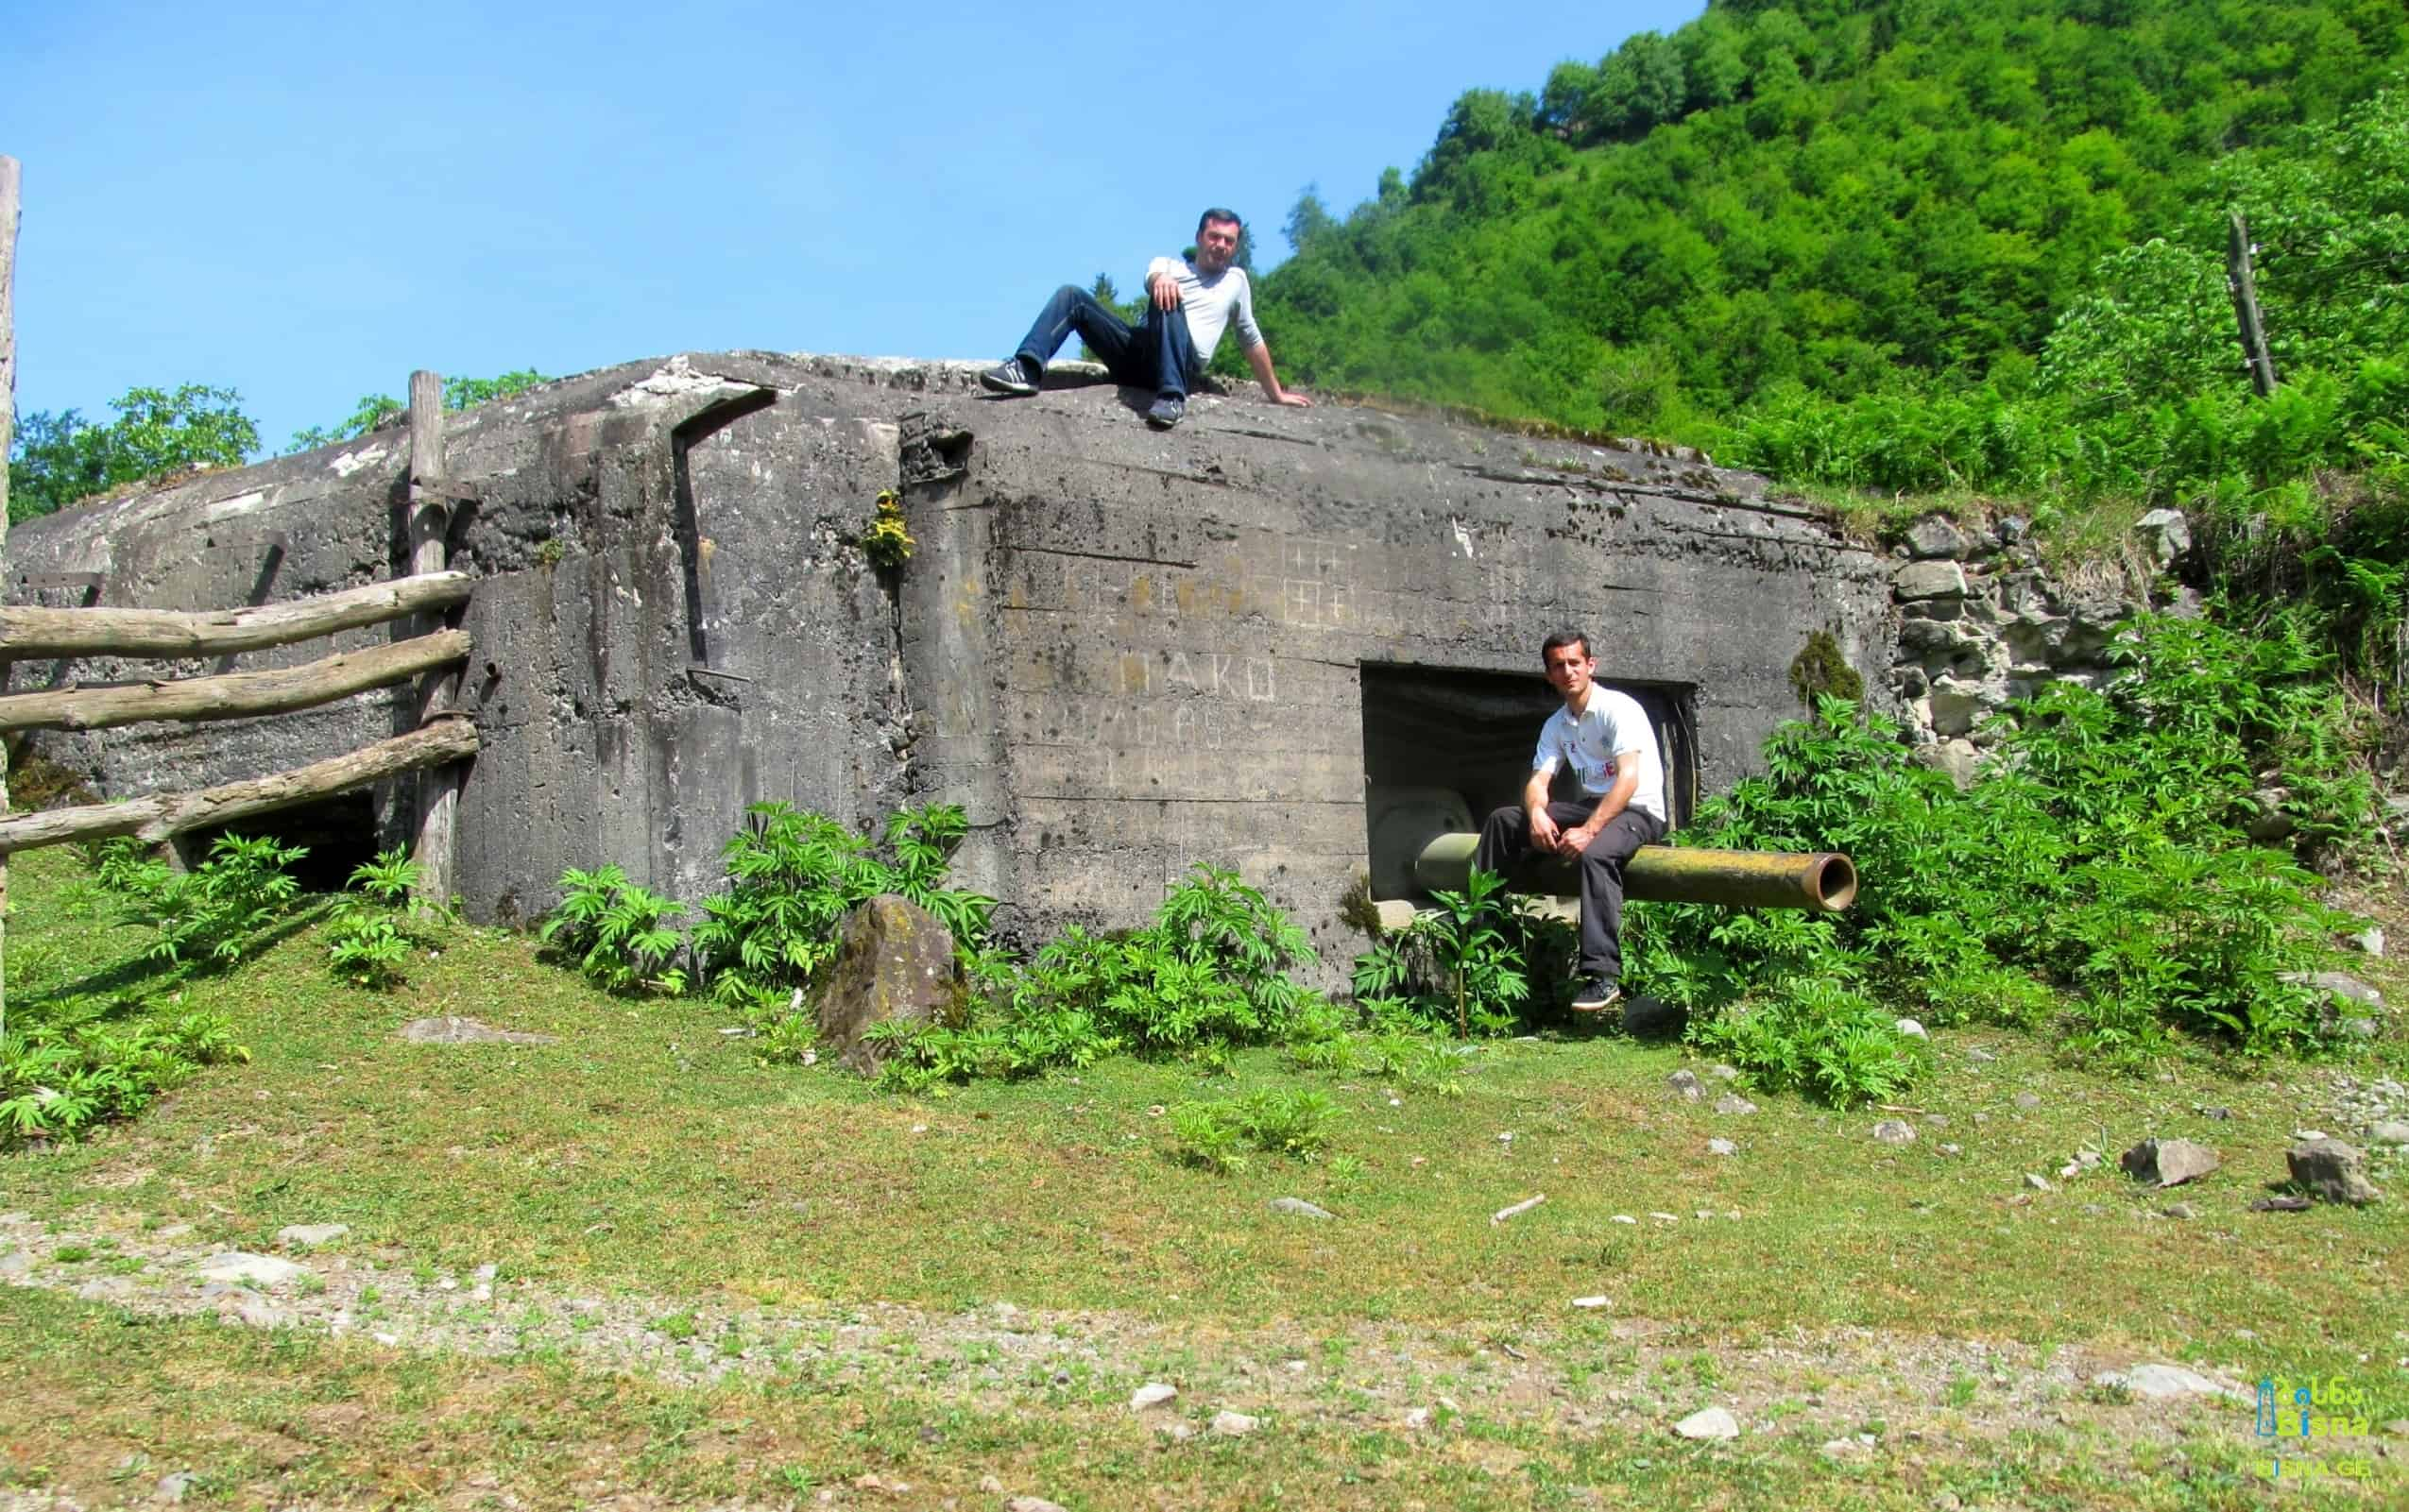 Abandoned bunker and artillery piece in Machakhela Valley, either of WWI or WWII-era